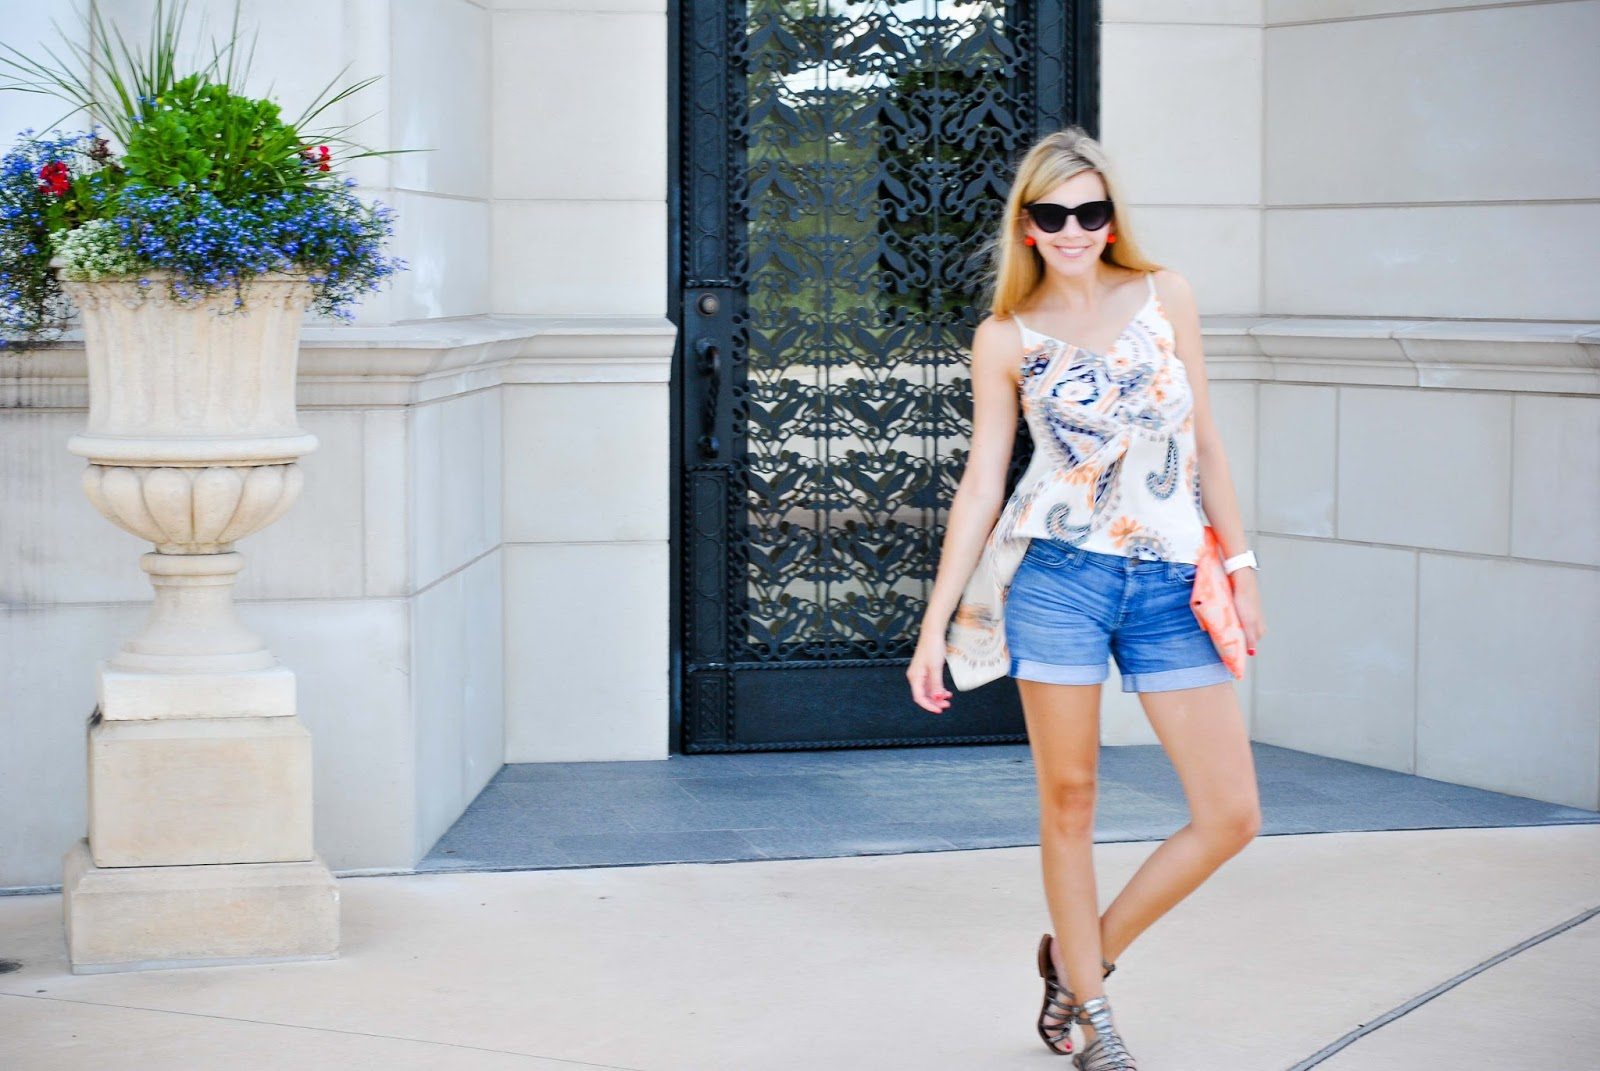 Gladiator Sandals - The Chic Burrow